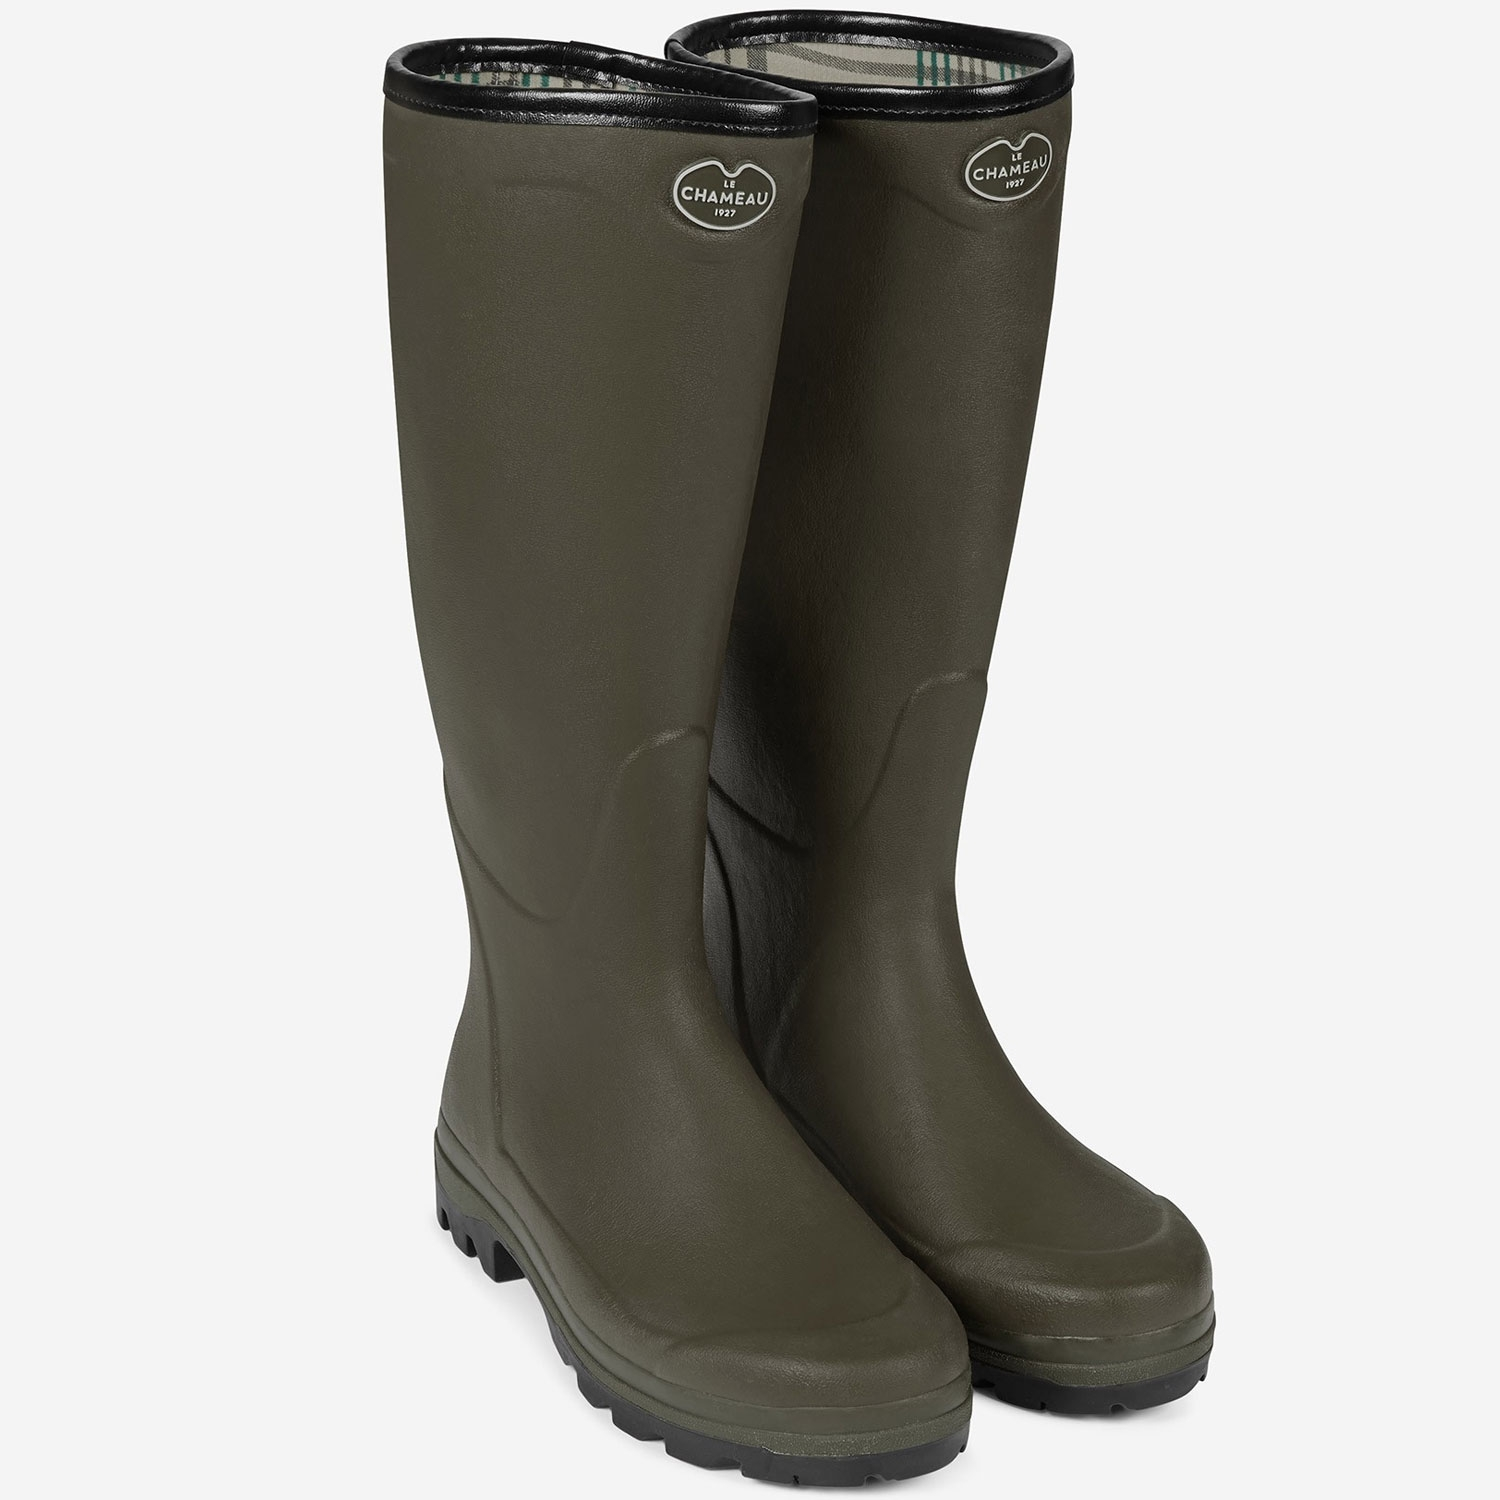 Le Chameau Country Jersey XL boots a9f4c70005b